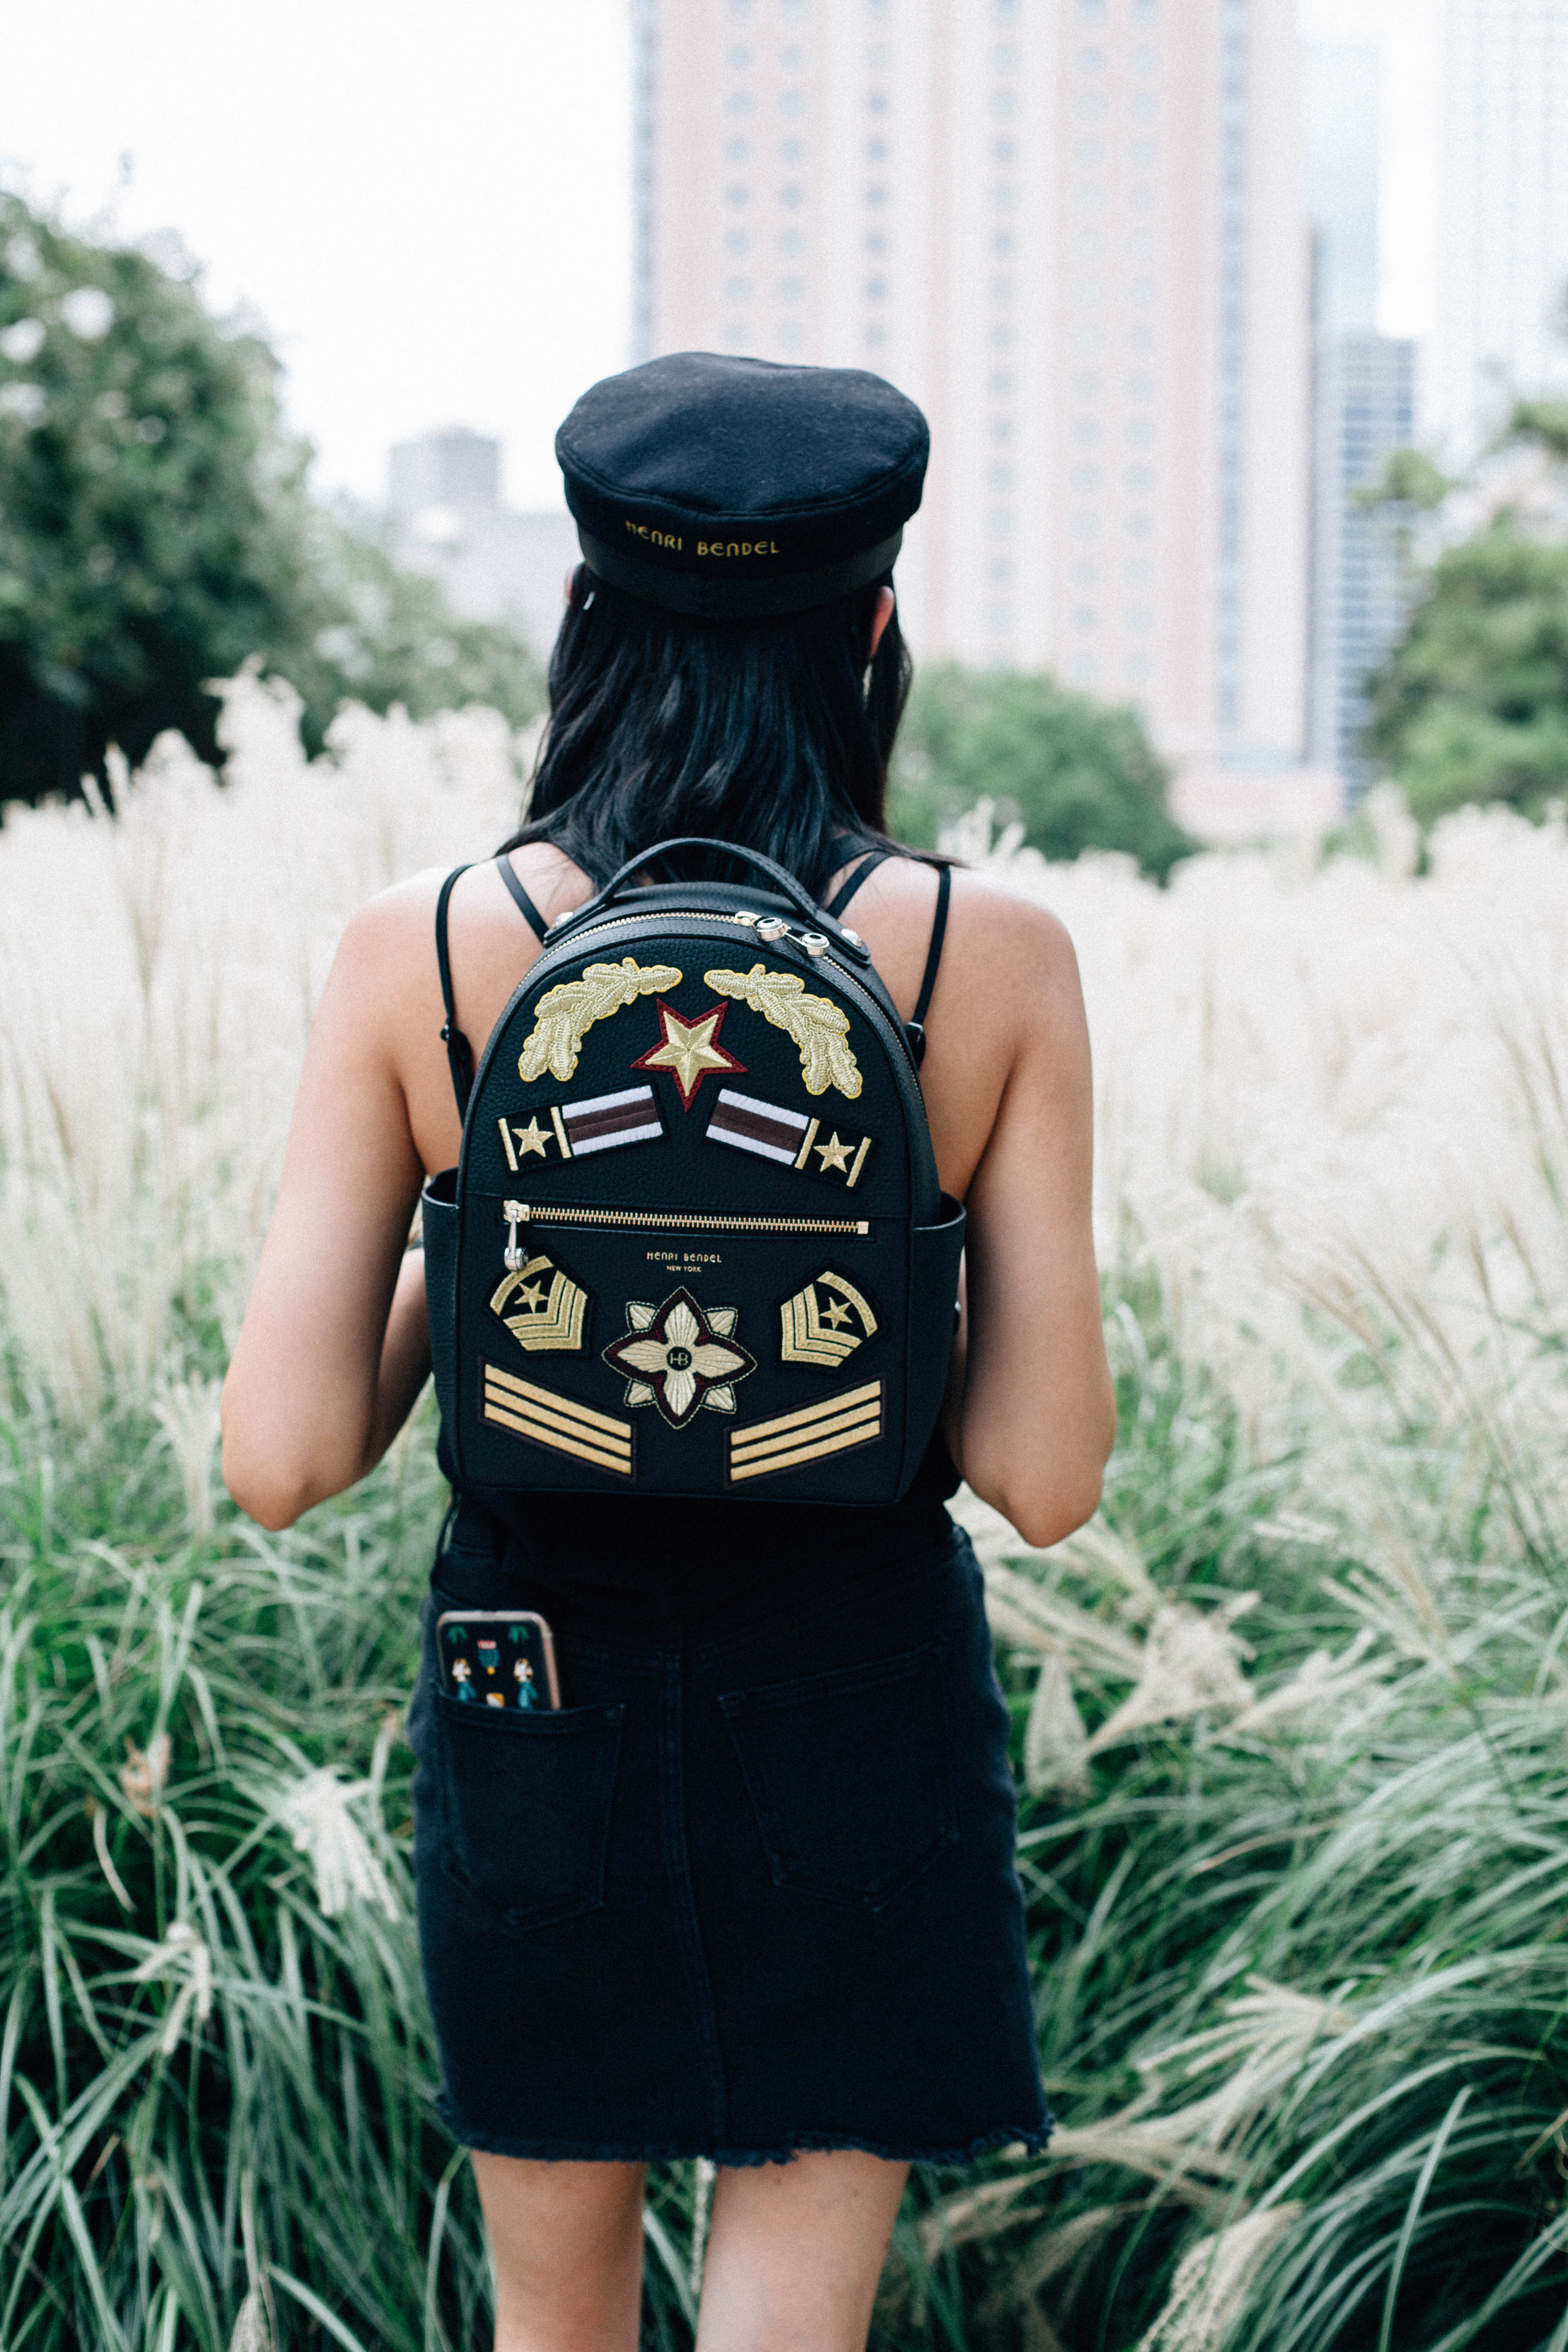 Lifestyle blogger Lilly Beltran of Daily Craving in a Henri Bendel backpack and newsboy hat